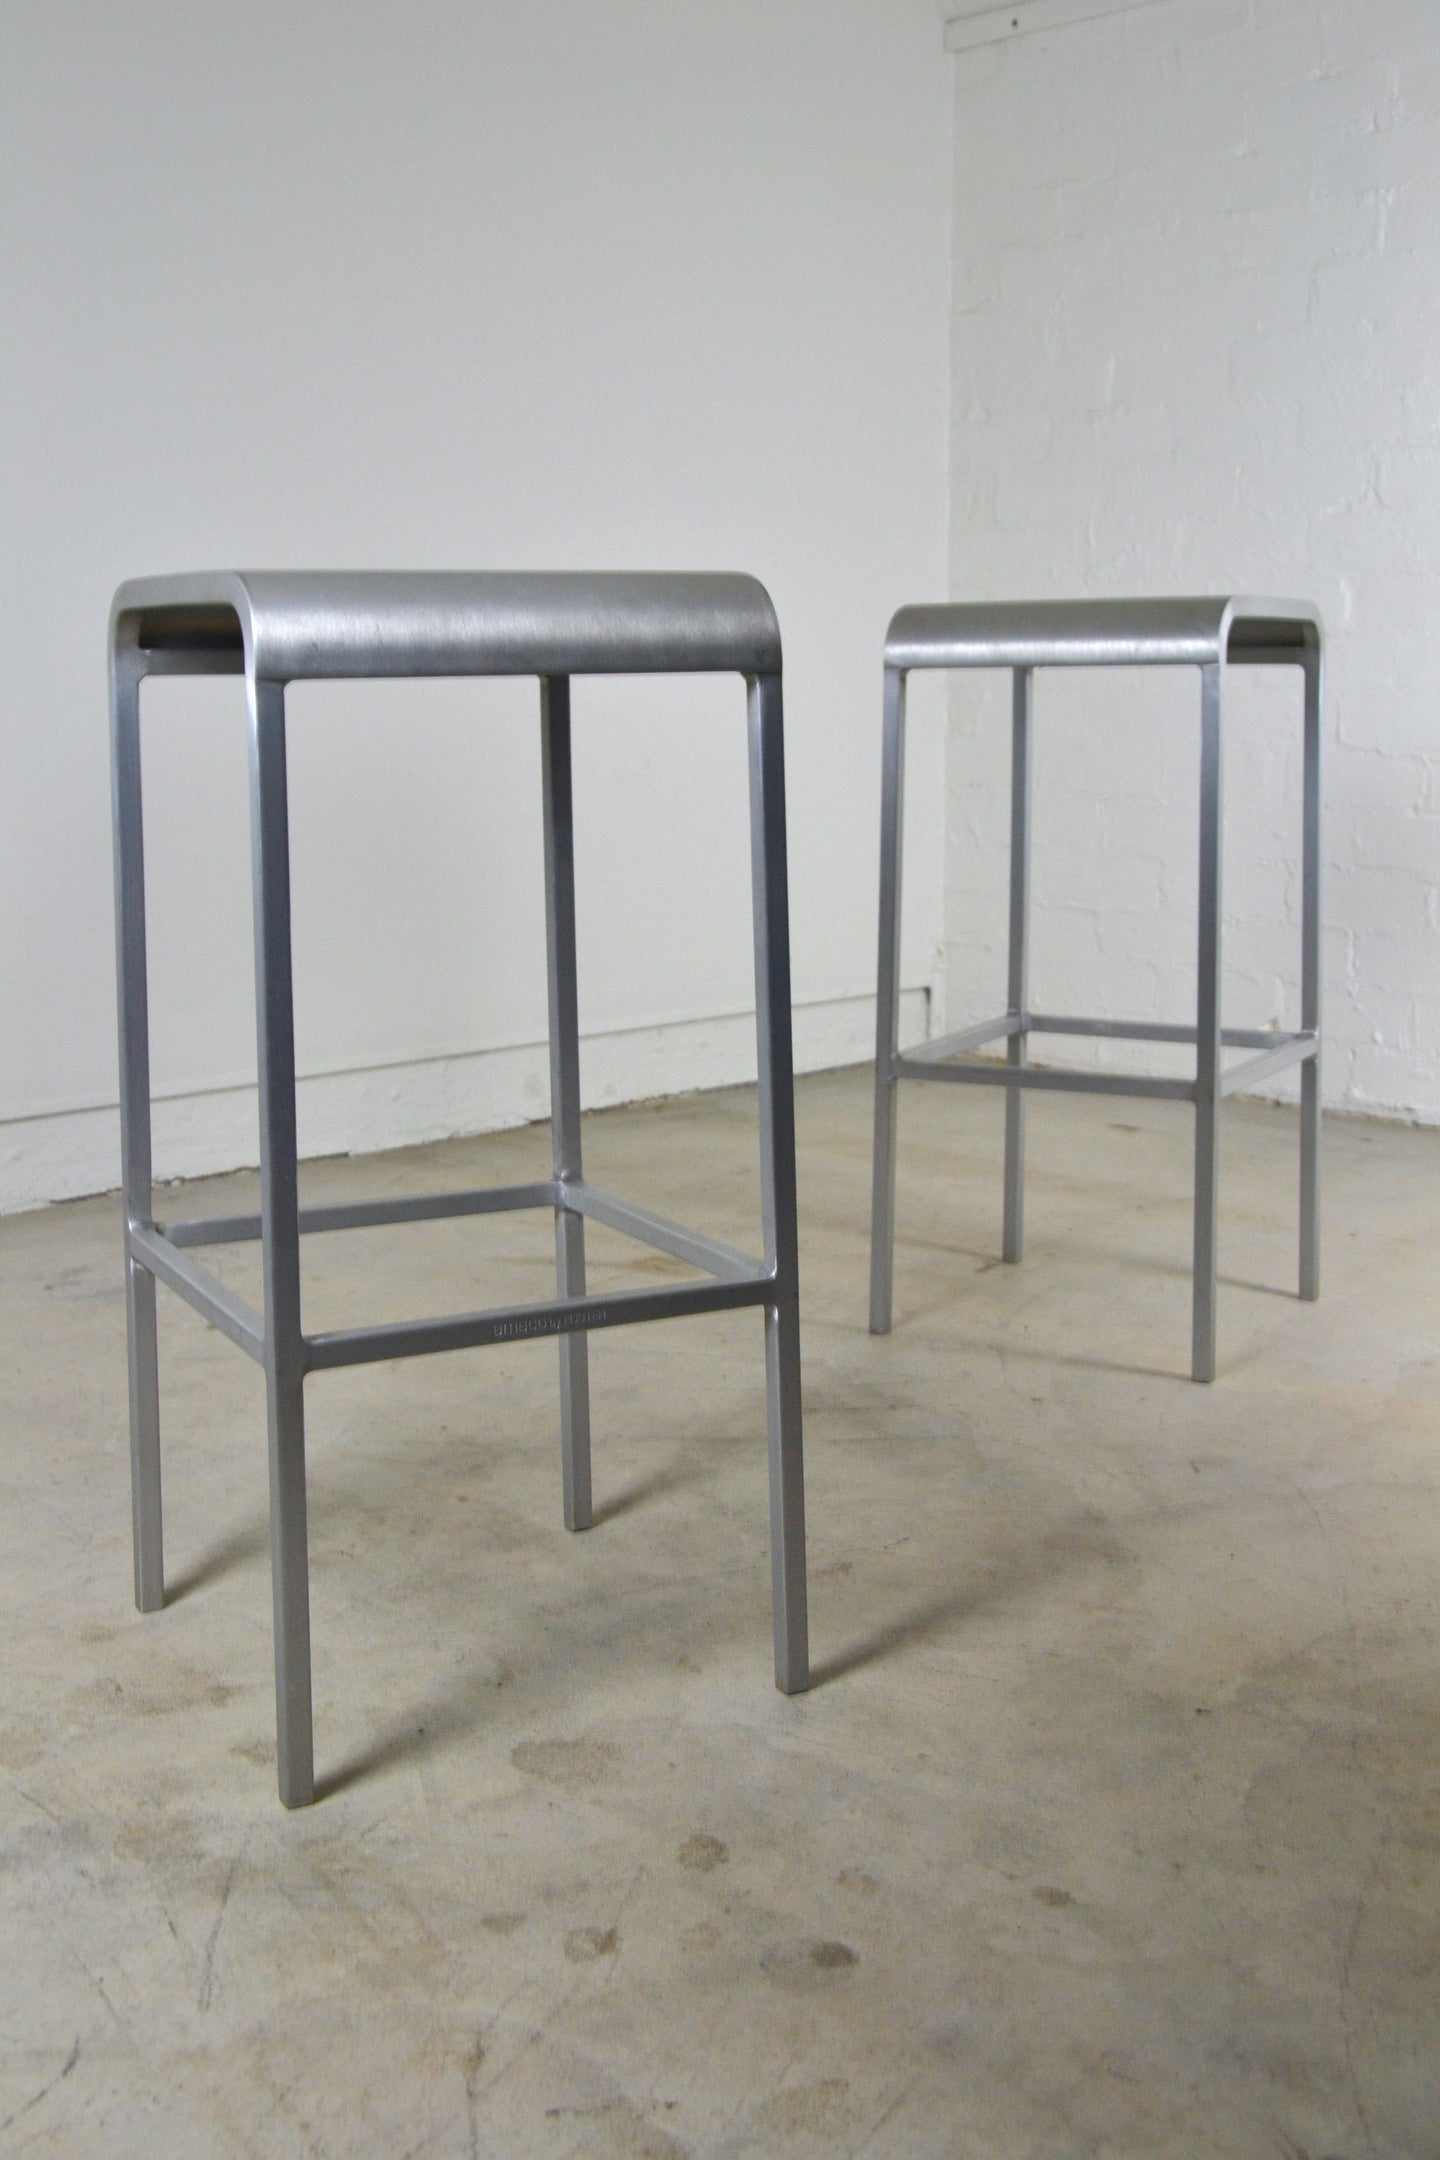 Pair Emeco Bar stools Brushed Aluminium USA c2006 By Norman Foster, Edwin Fox Furniture Melbourne furniture sales and restoration service,